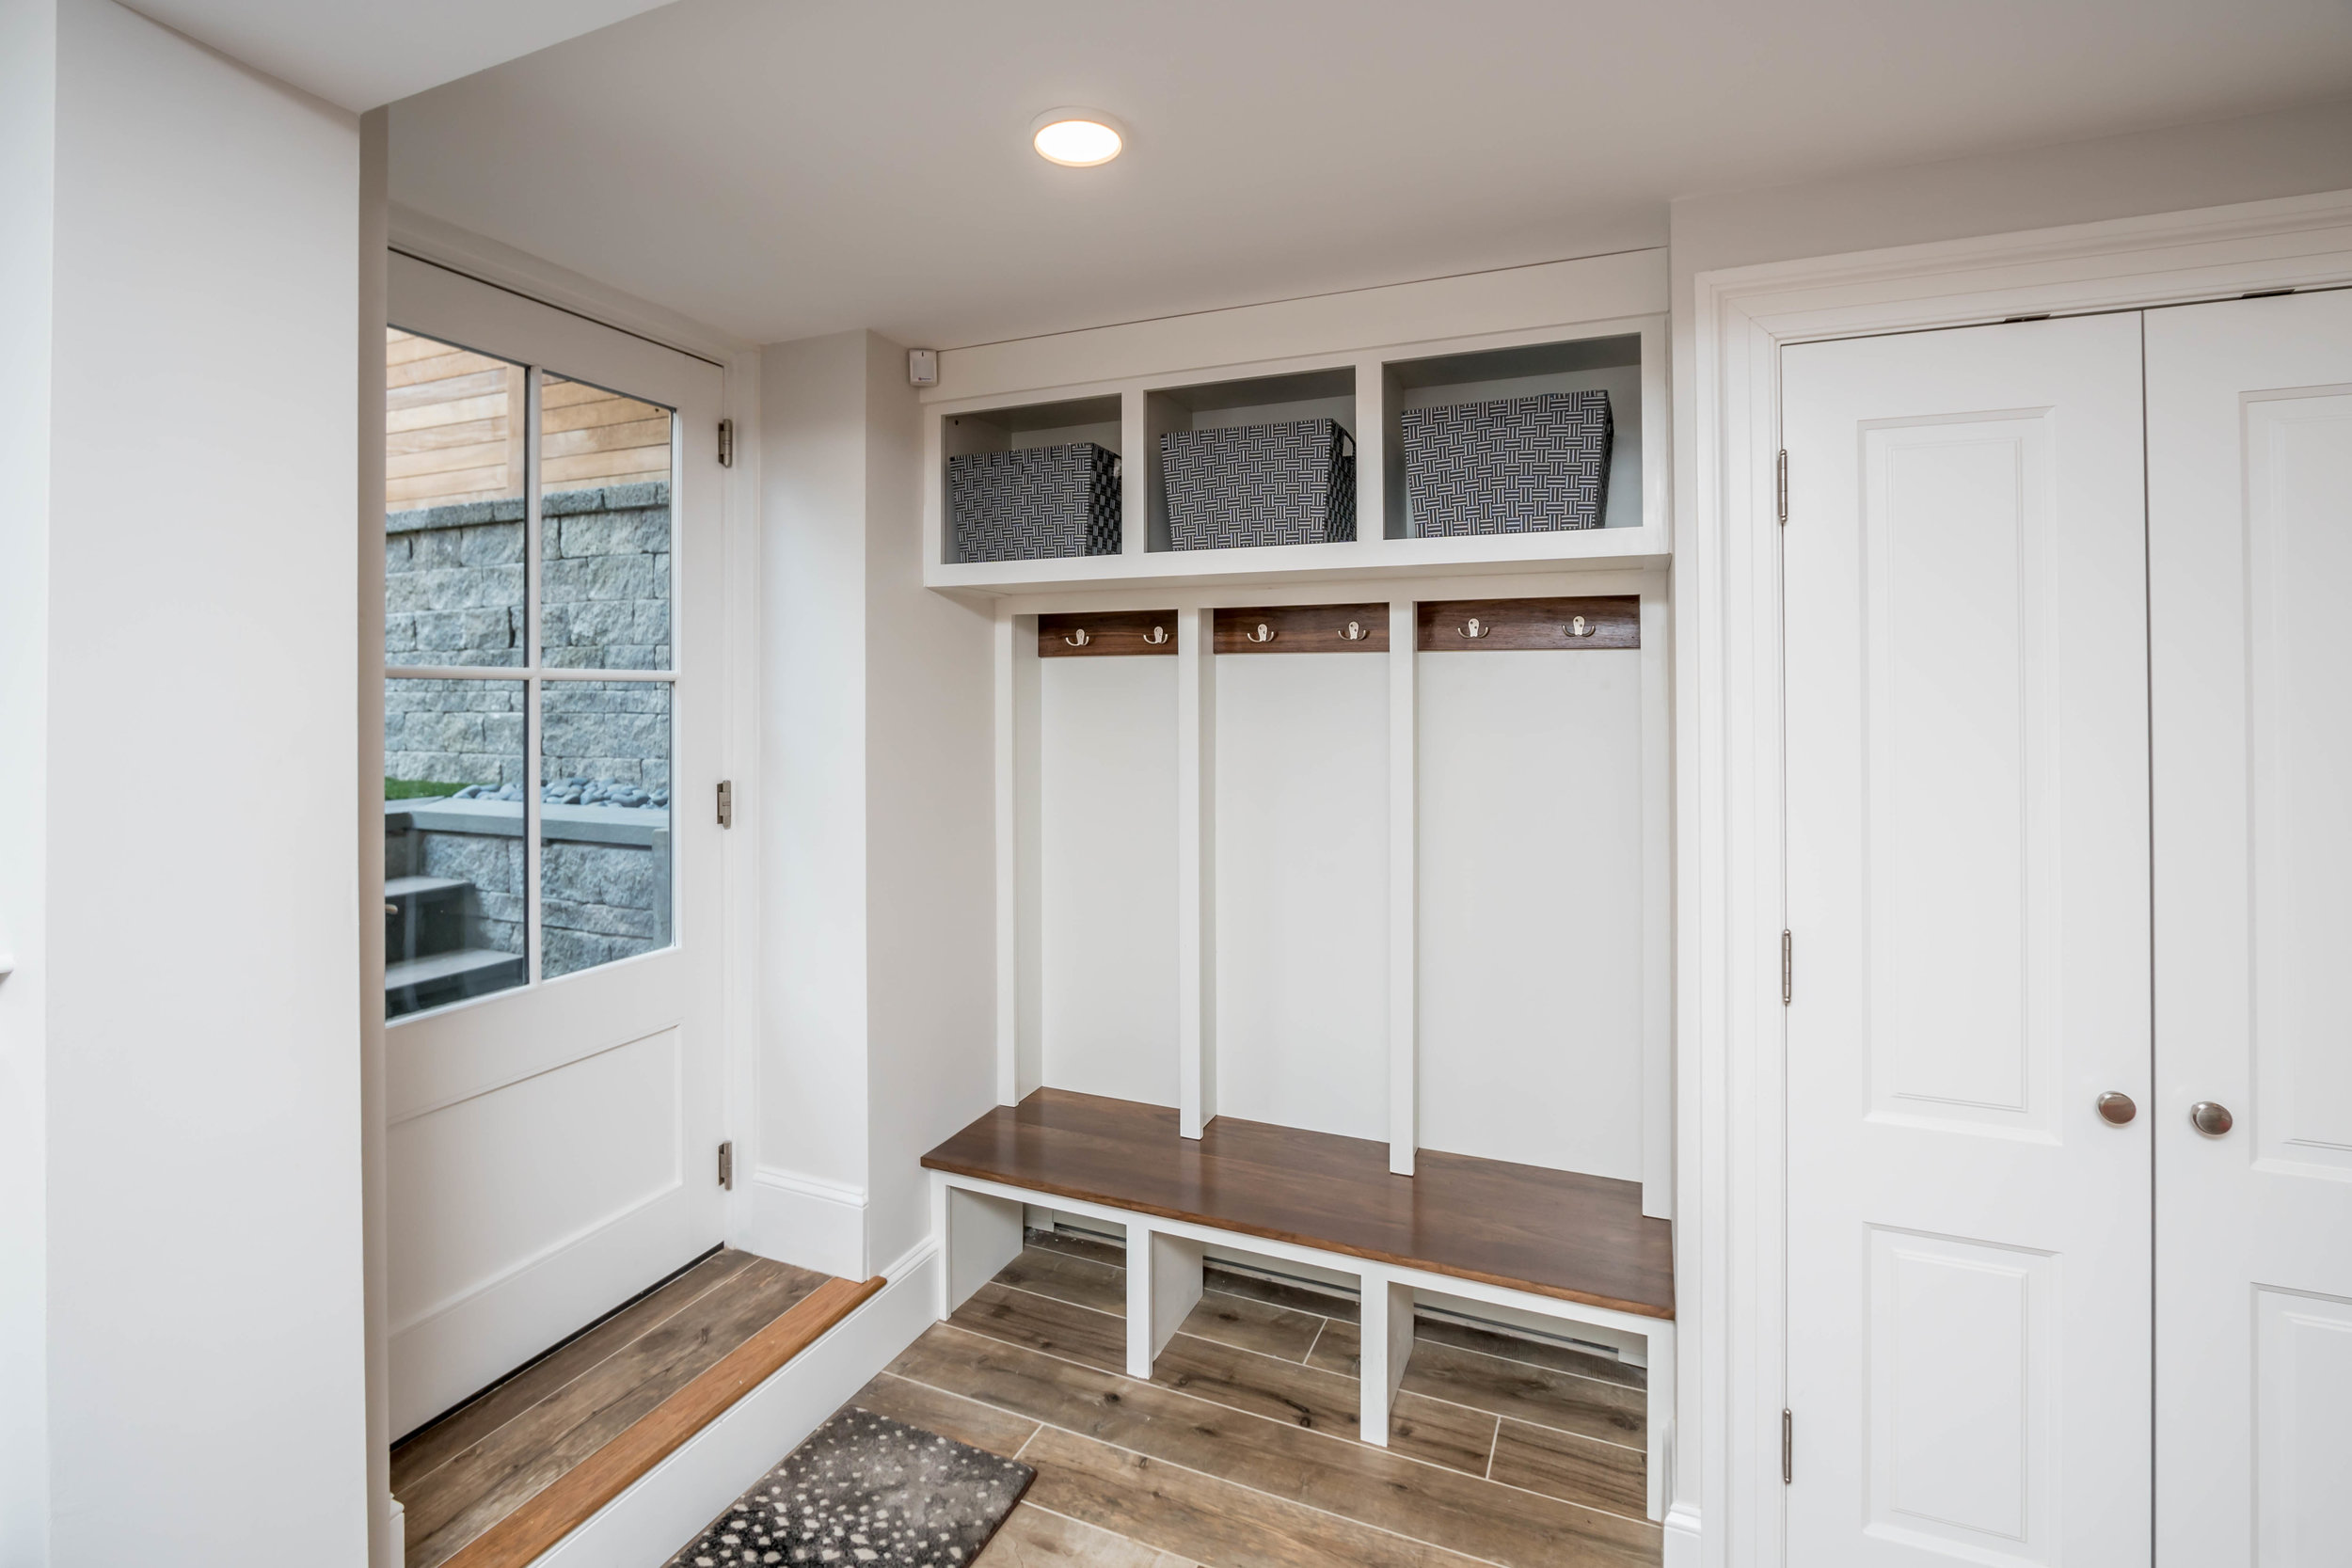 Mudroom Built-Ins and cabinetry